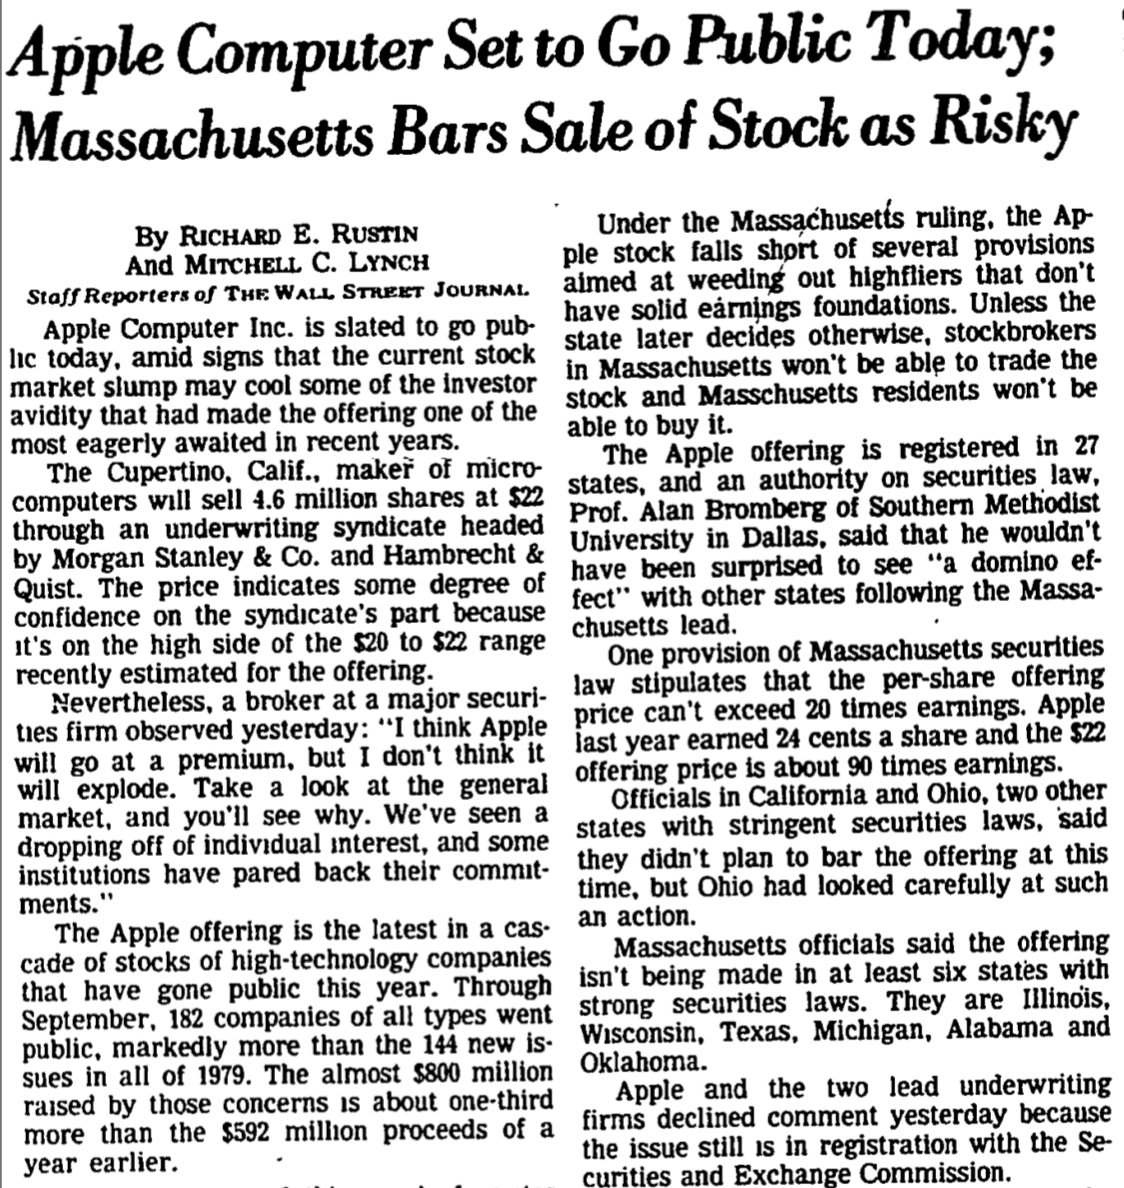 Apple went public 38 years ago today, on 12/12/80. Those MA residents barred from buying the stock (too risky!) probably wish they&#39;d had the opportunity; the value of one share bought at the $22 IPO price now would be (after multiple stock splits) more than $10K. #regrets<br>http://pic.twitter.com/OhODXun8T5